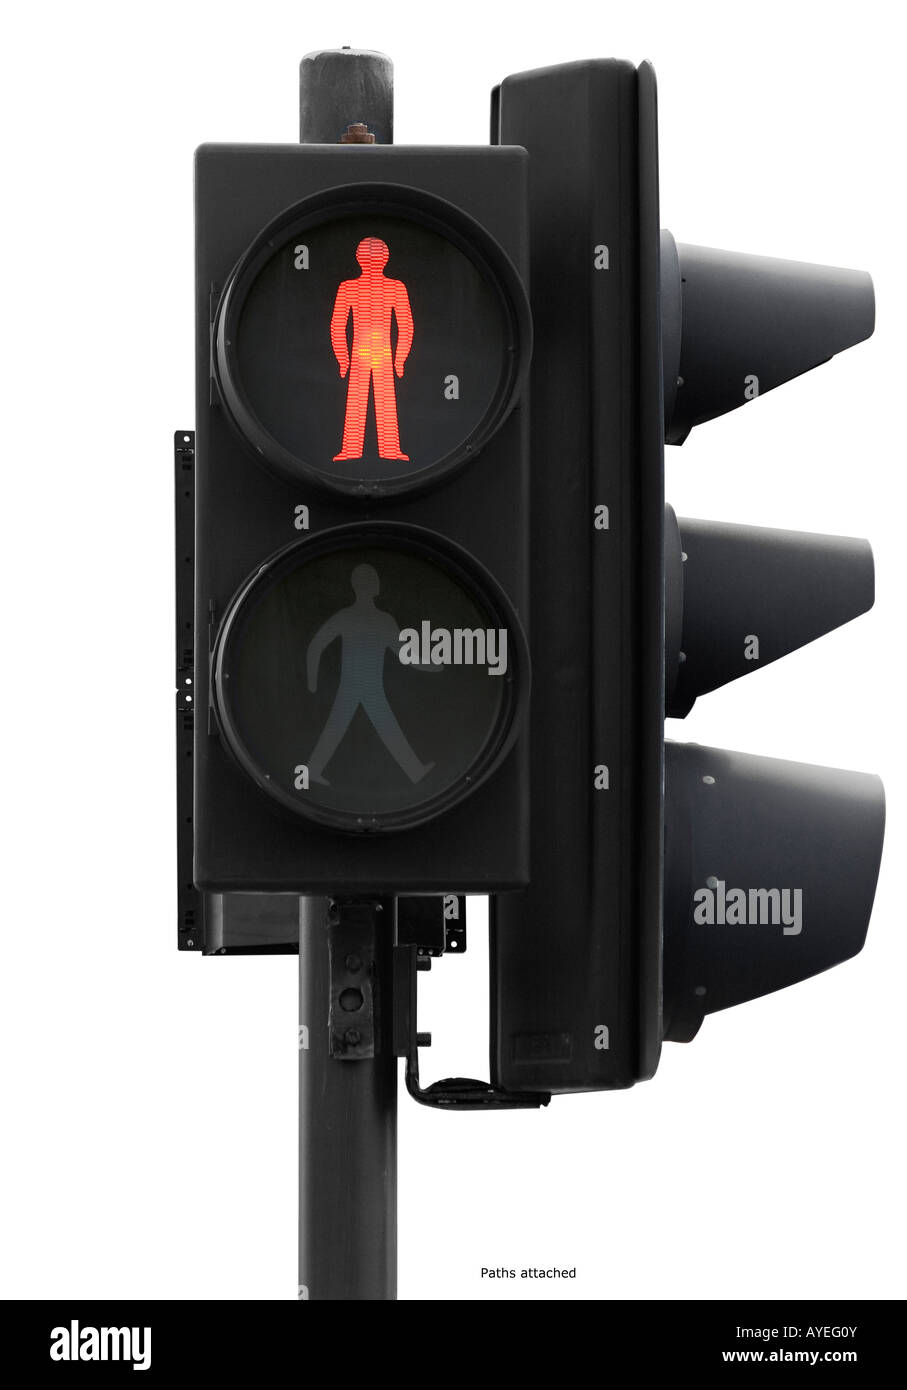 Traffic lights with red crossing man - Stock Image